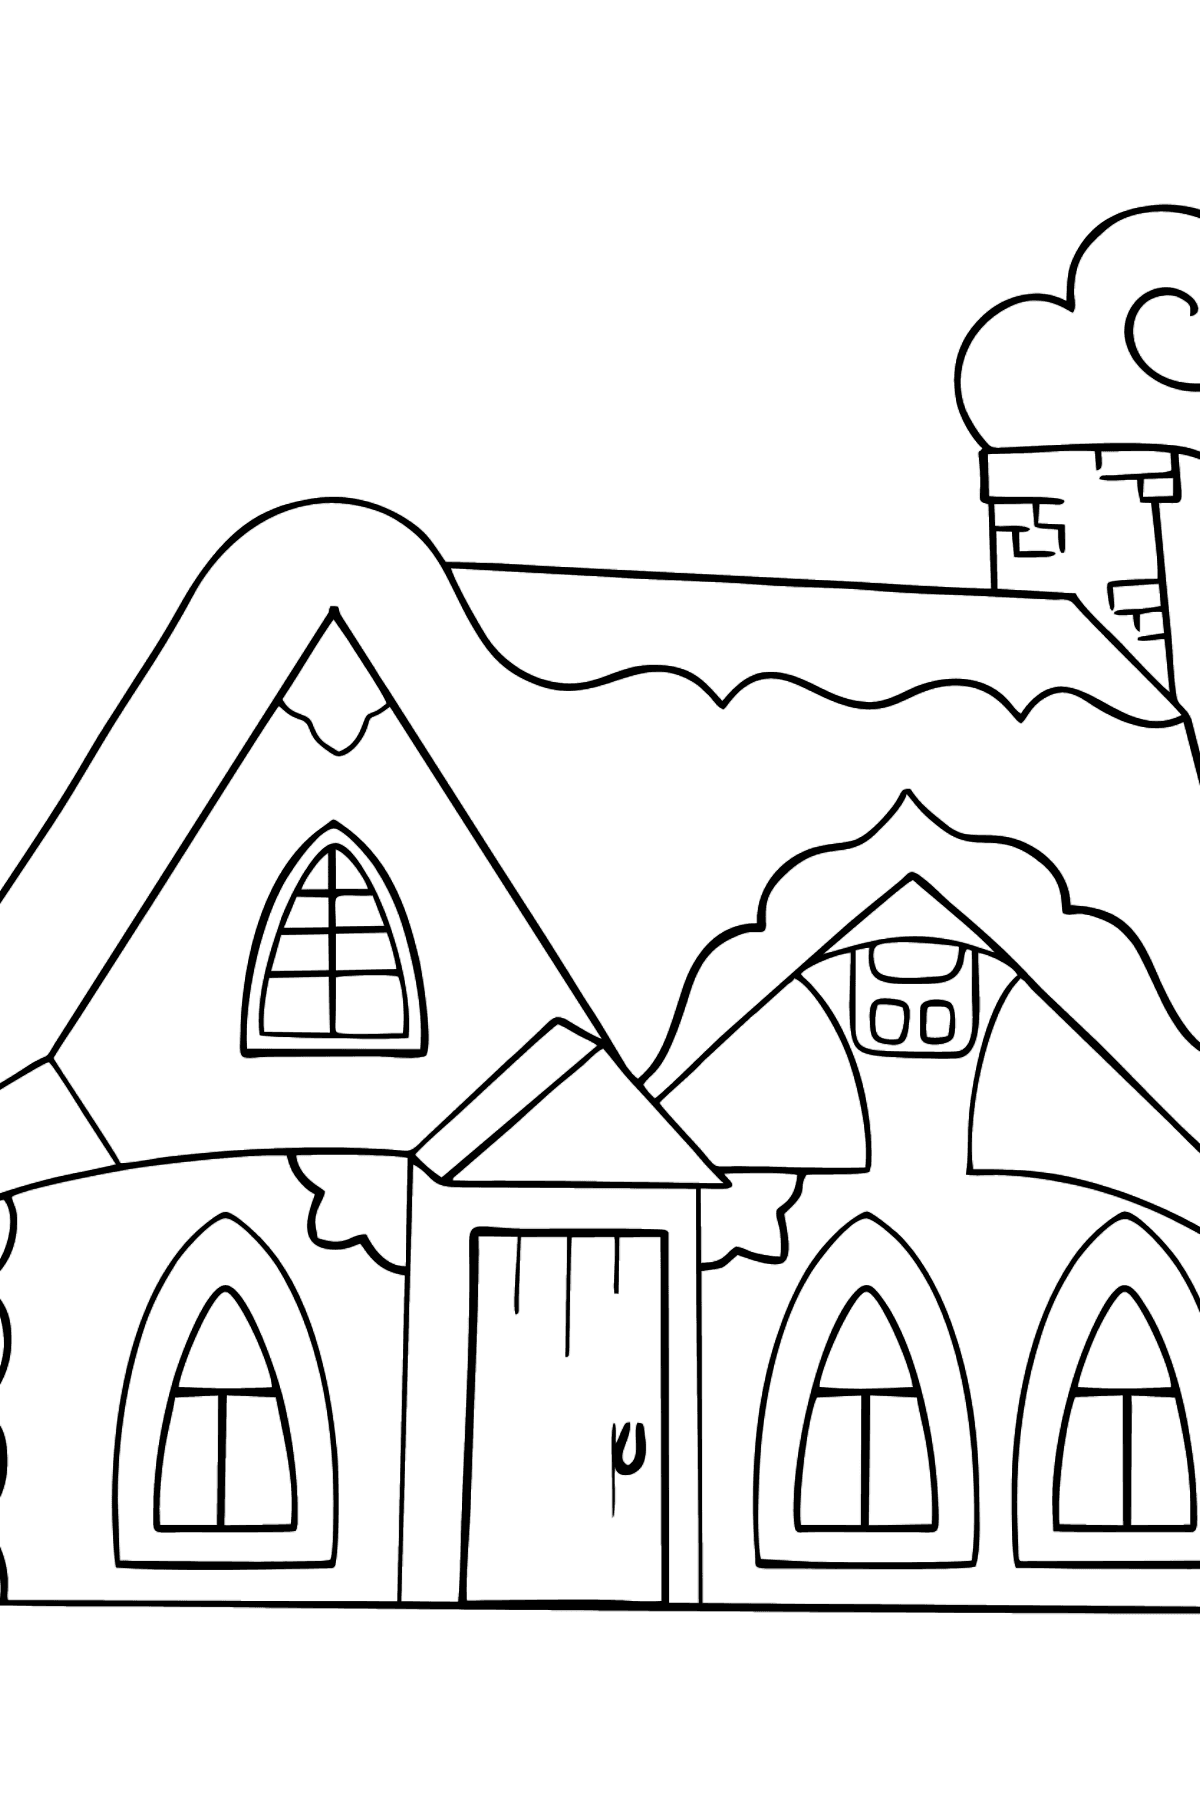 Coloring Page - A Fairytale House - Coloring Pages for Kids